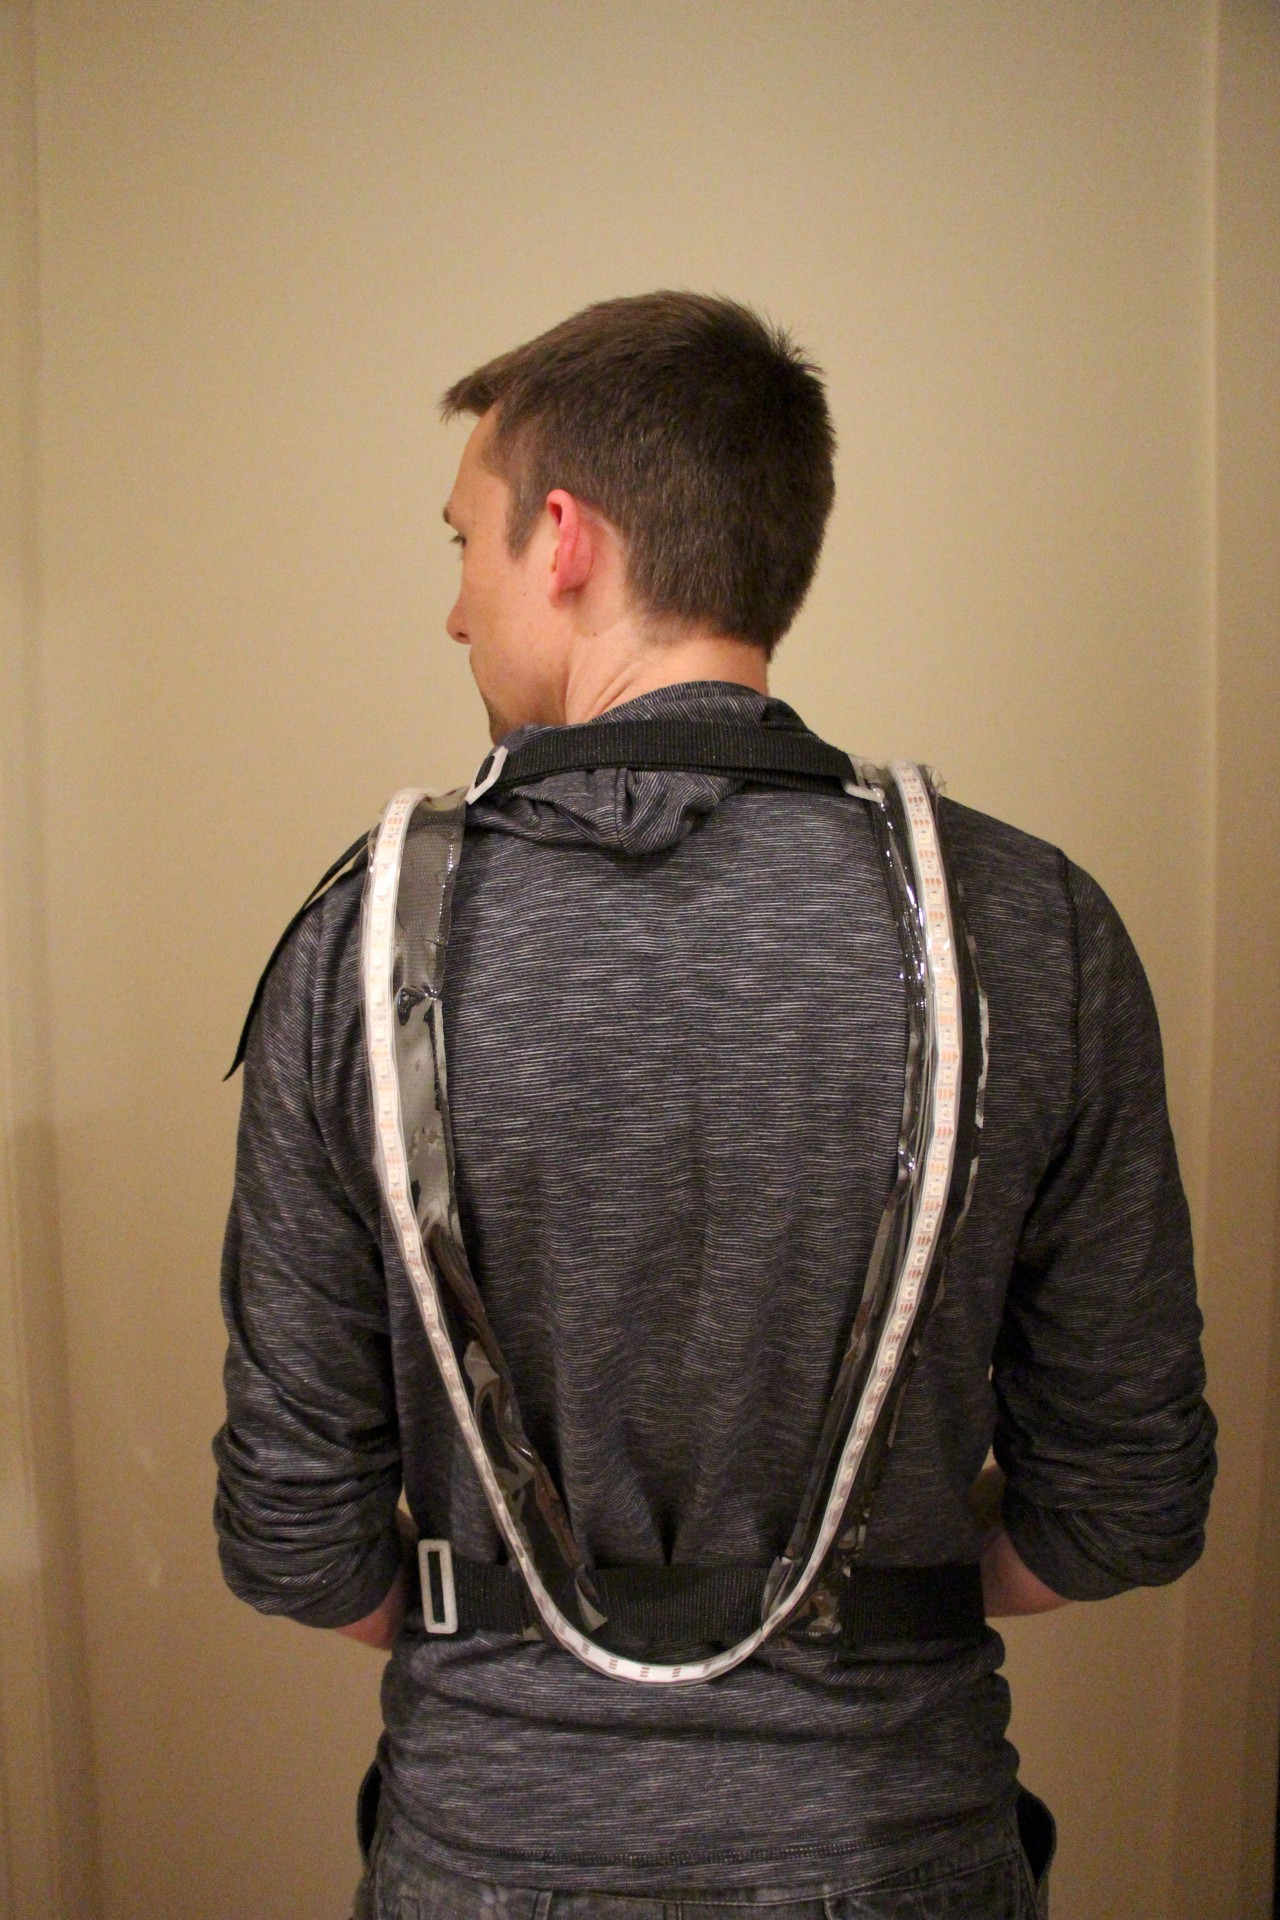 You can see the back of the harness here and how it deliberately sits low on the back, so that drivers behind you can still see you indicating even when you are riding bent forward over your handlebars. The harness is fully adjustable and can be adjusted to sit even lower for tall people - our model here is 1.85m (6 ft).